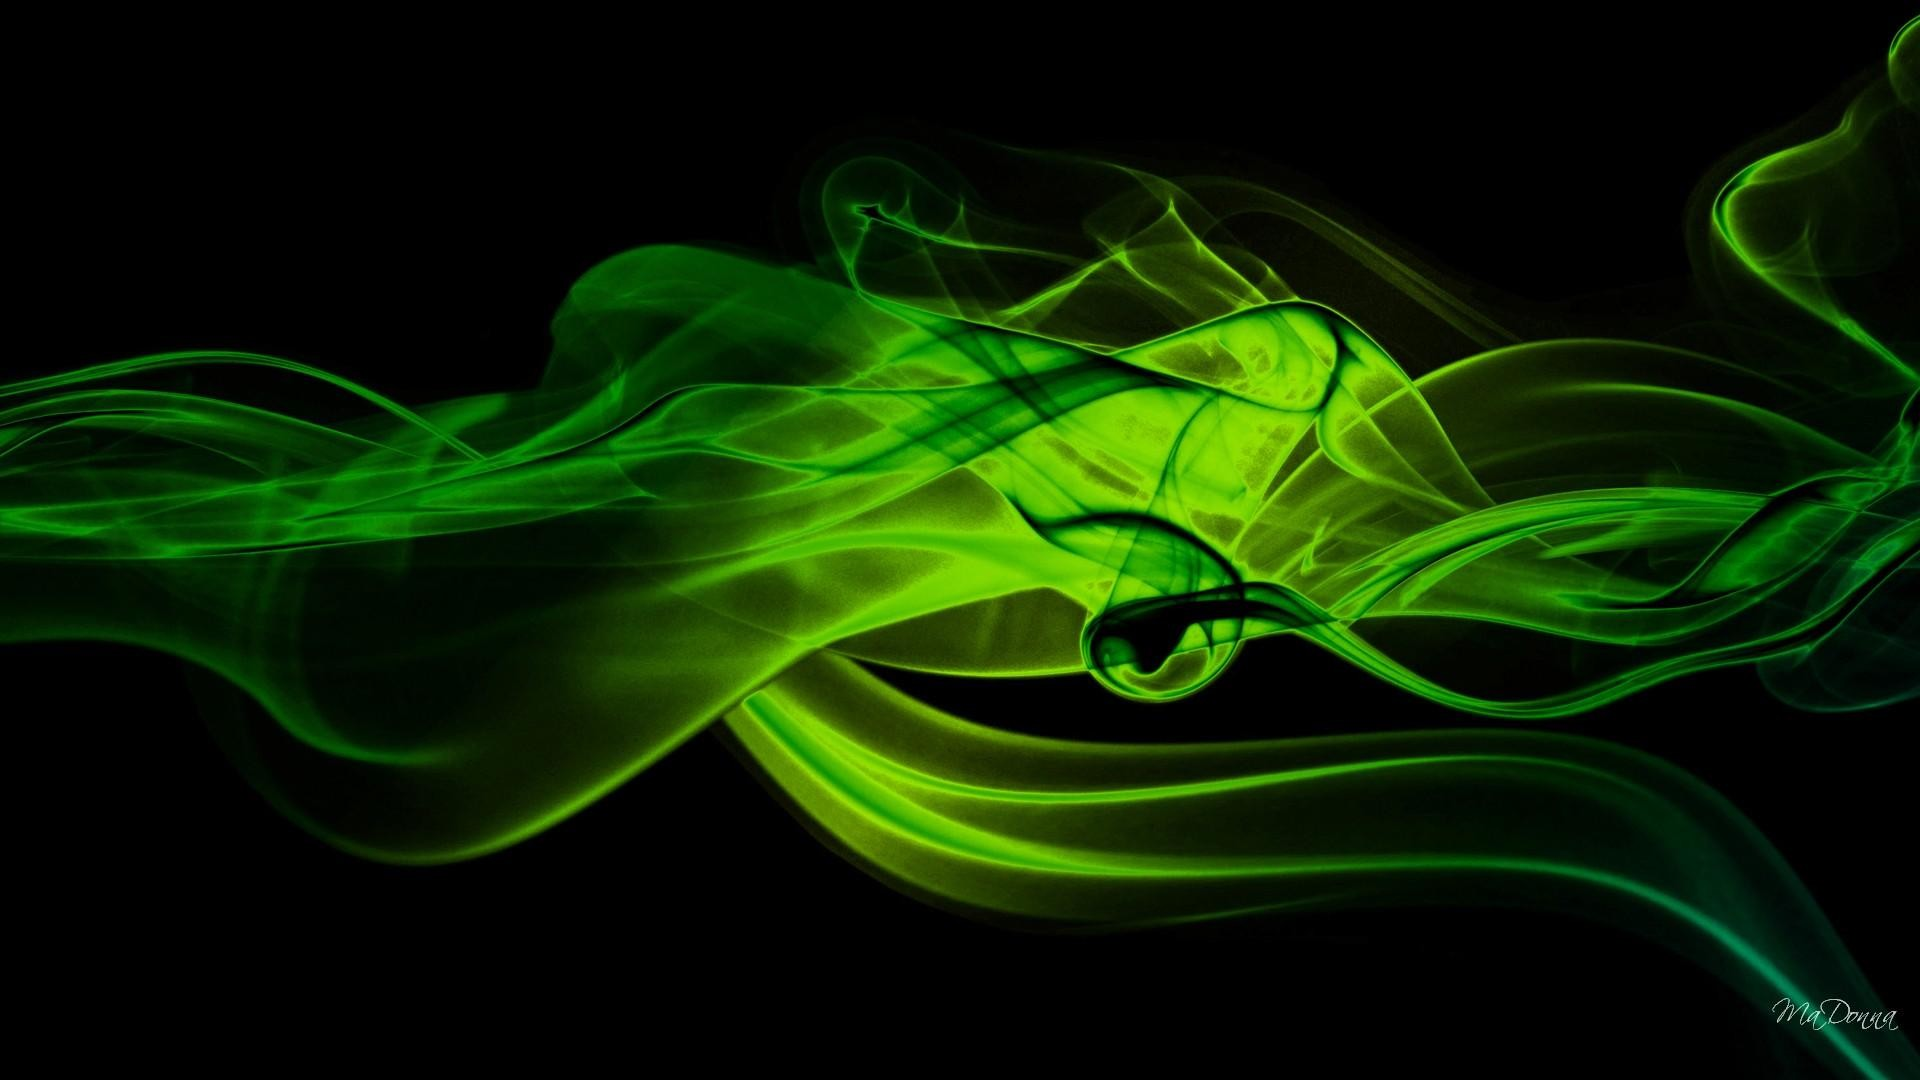 Neon Green Backgrounds ·①